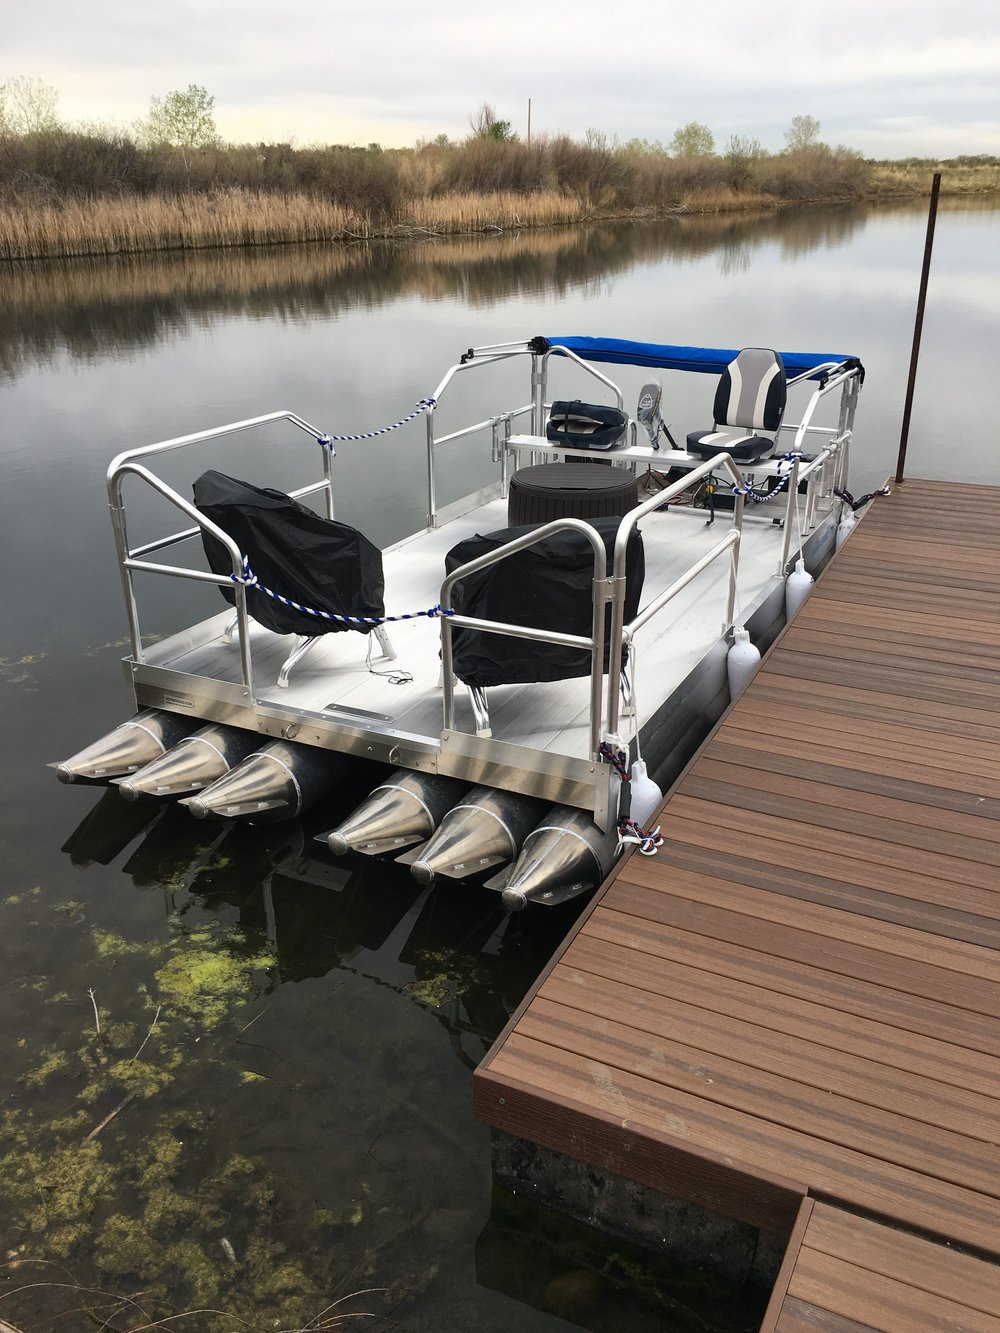 As you see with this customers 716 Aluma Sport, it is possible to have chairs or tables anywhere you want with all the available floor space. This is a great example of what your 716 could look like on the water with a few optional accessories.